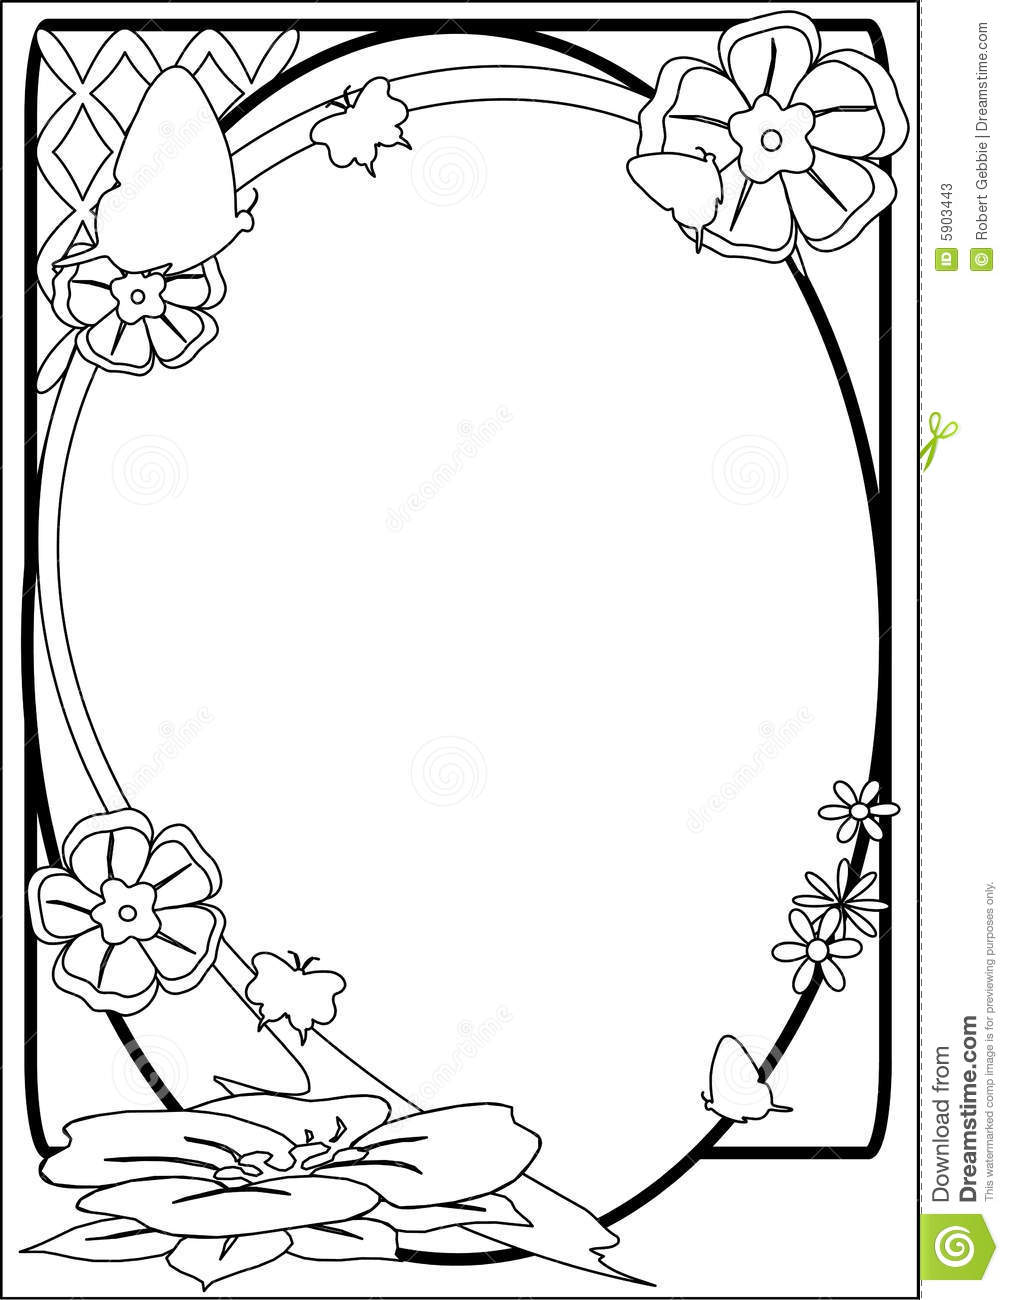 Butterfly And Flower Border Bw Stock Vector Illustration Of